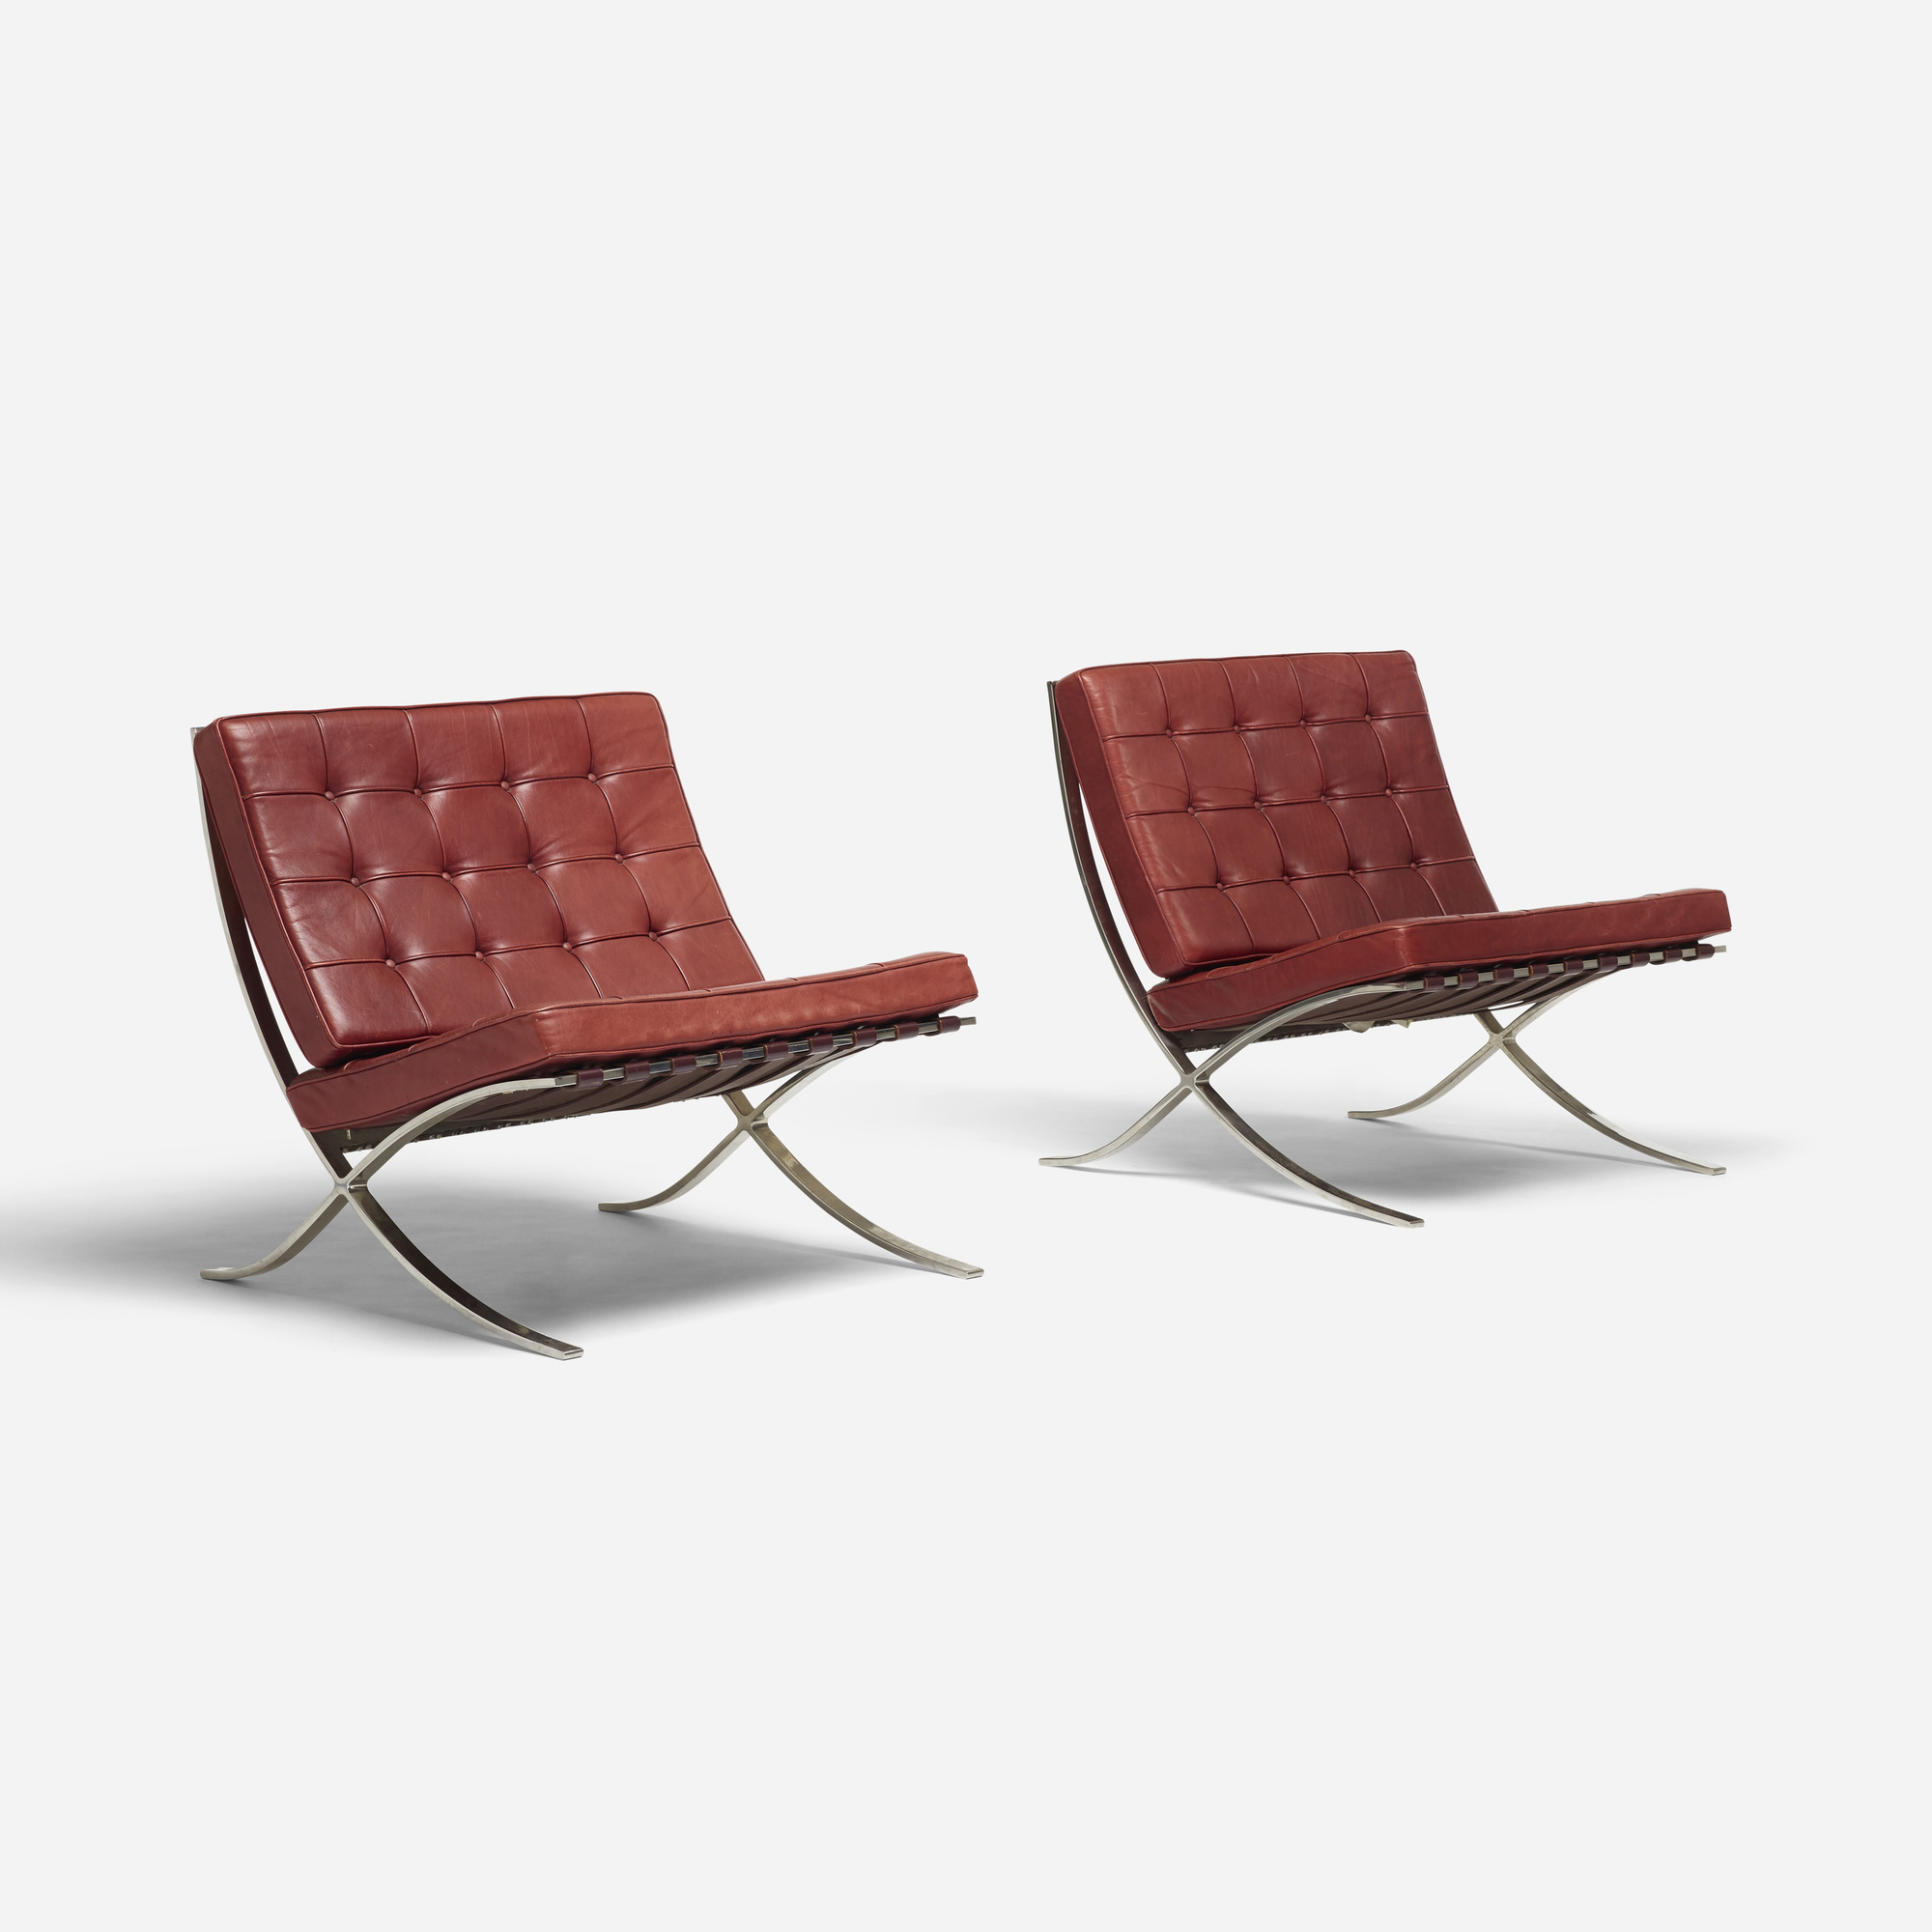 184 ludwig mies van der rohe barcelona chairs pair 3 of 4